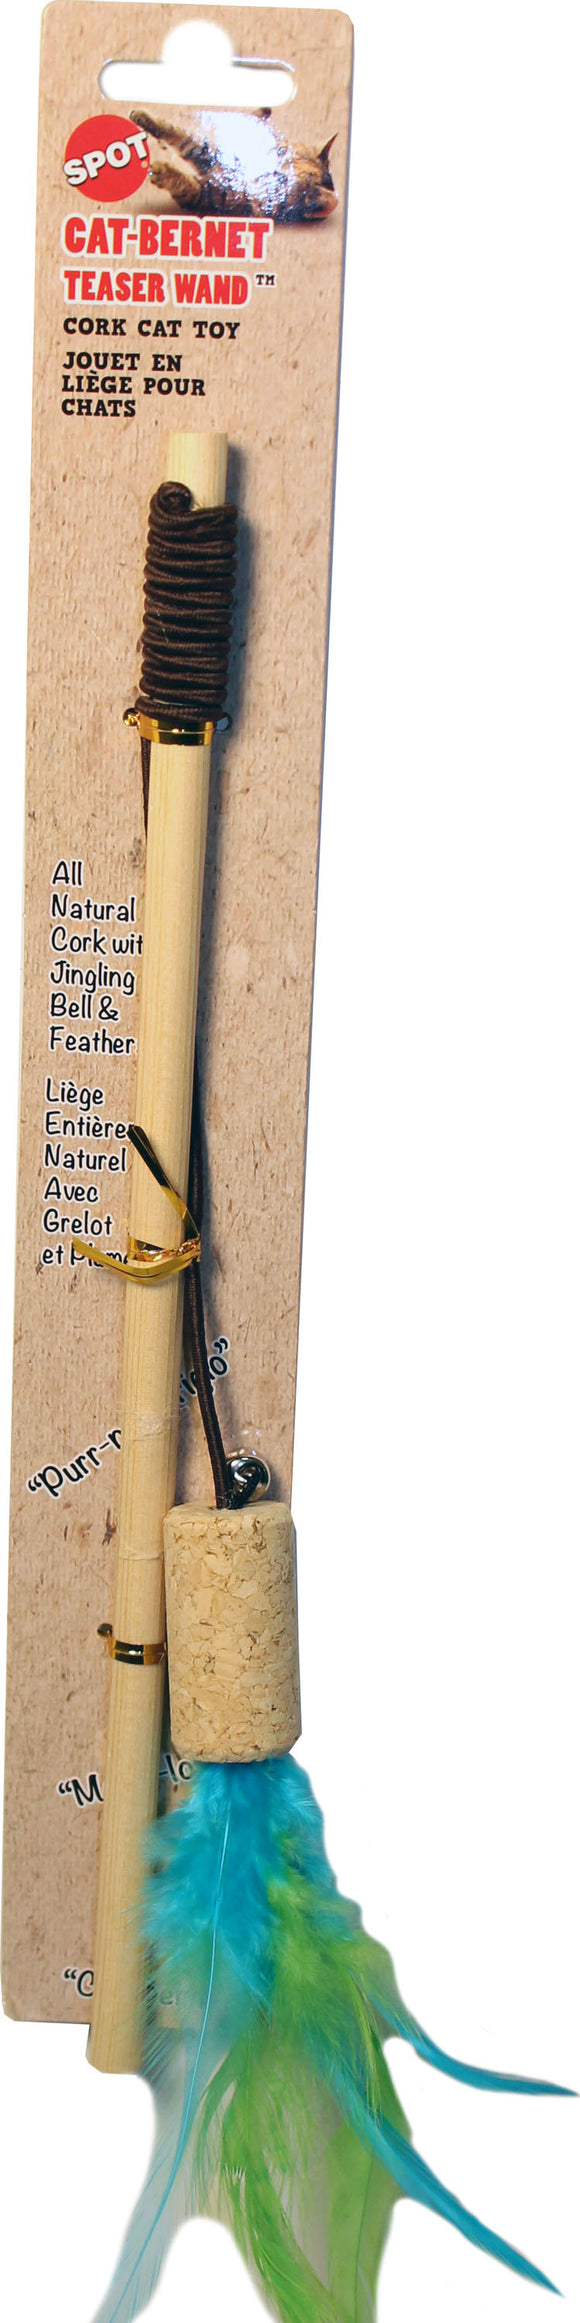 Ethical Cat - Cat-bernet Cork Teaser Wand